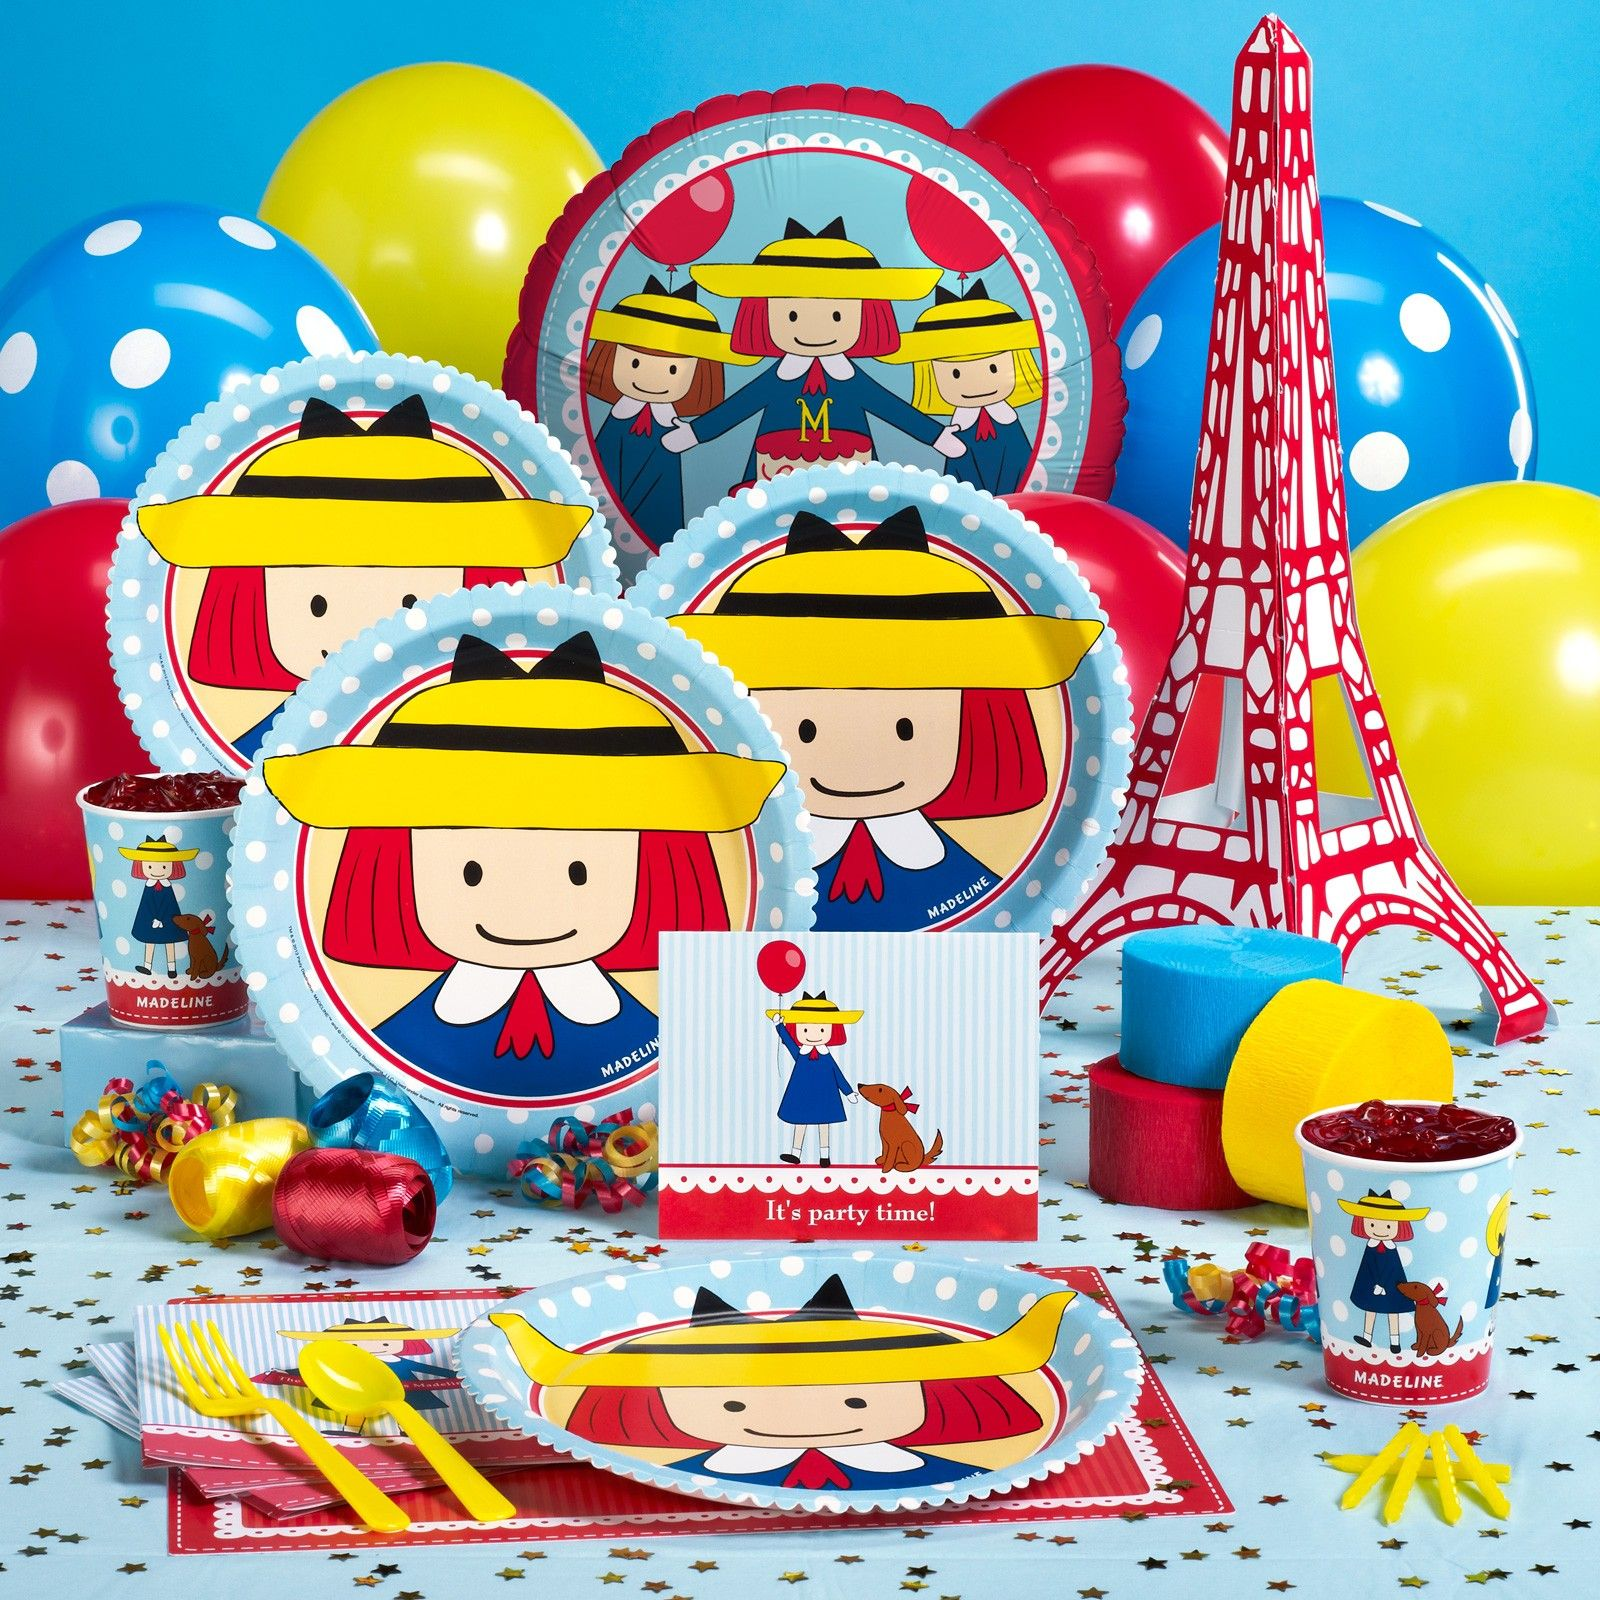 Madeline Birthday Party Pack